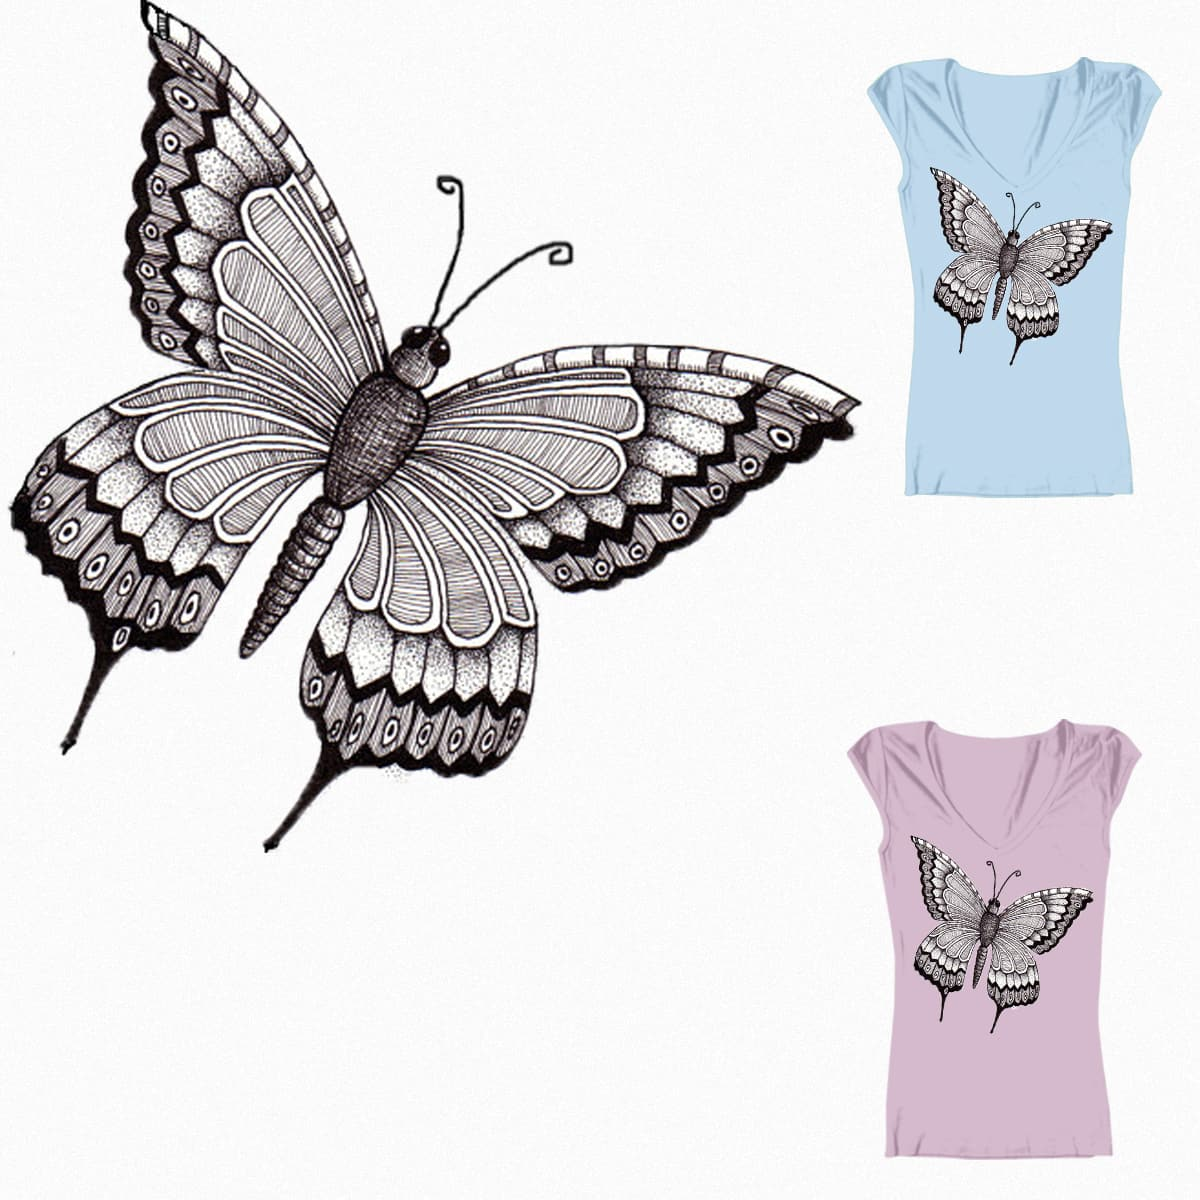 butterfly by simran3791 on Threadless